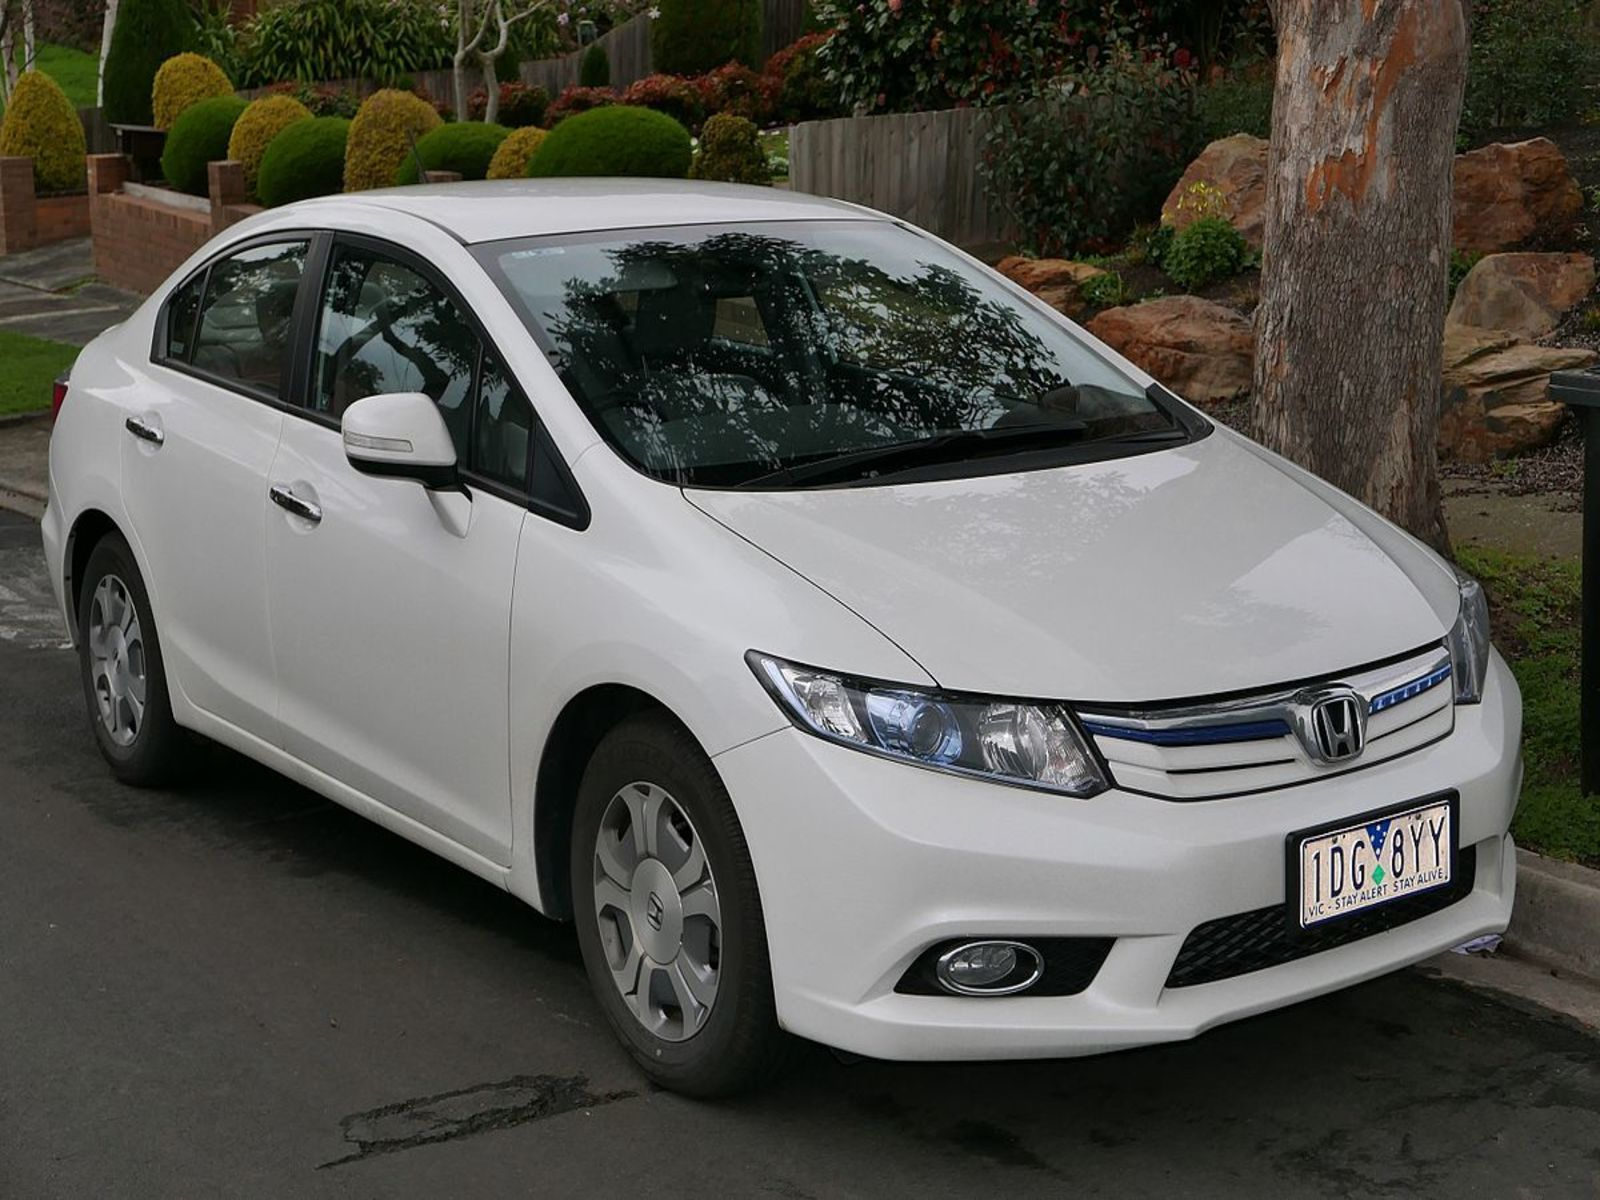 Price for Used Honda Civic 2008 Check more at https//www